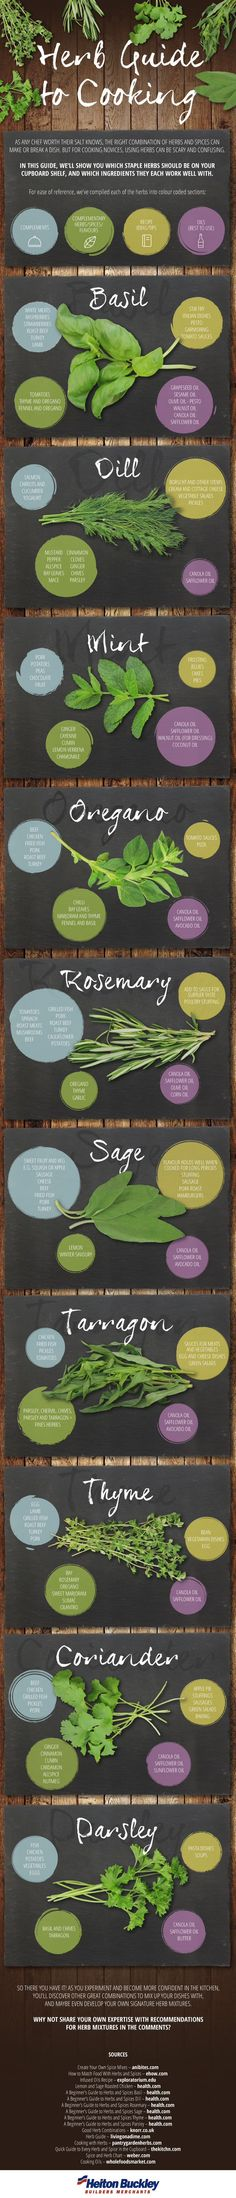 A Guide To Using Herbs When You Cook (Infographic)